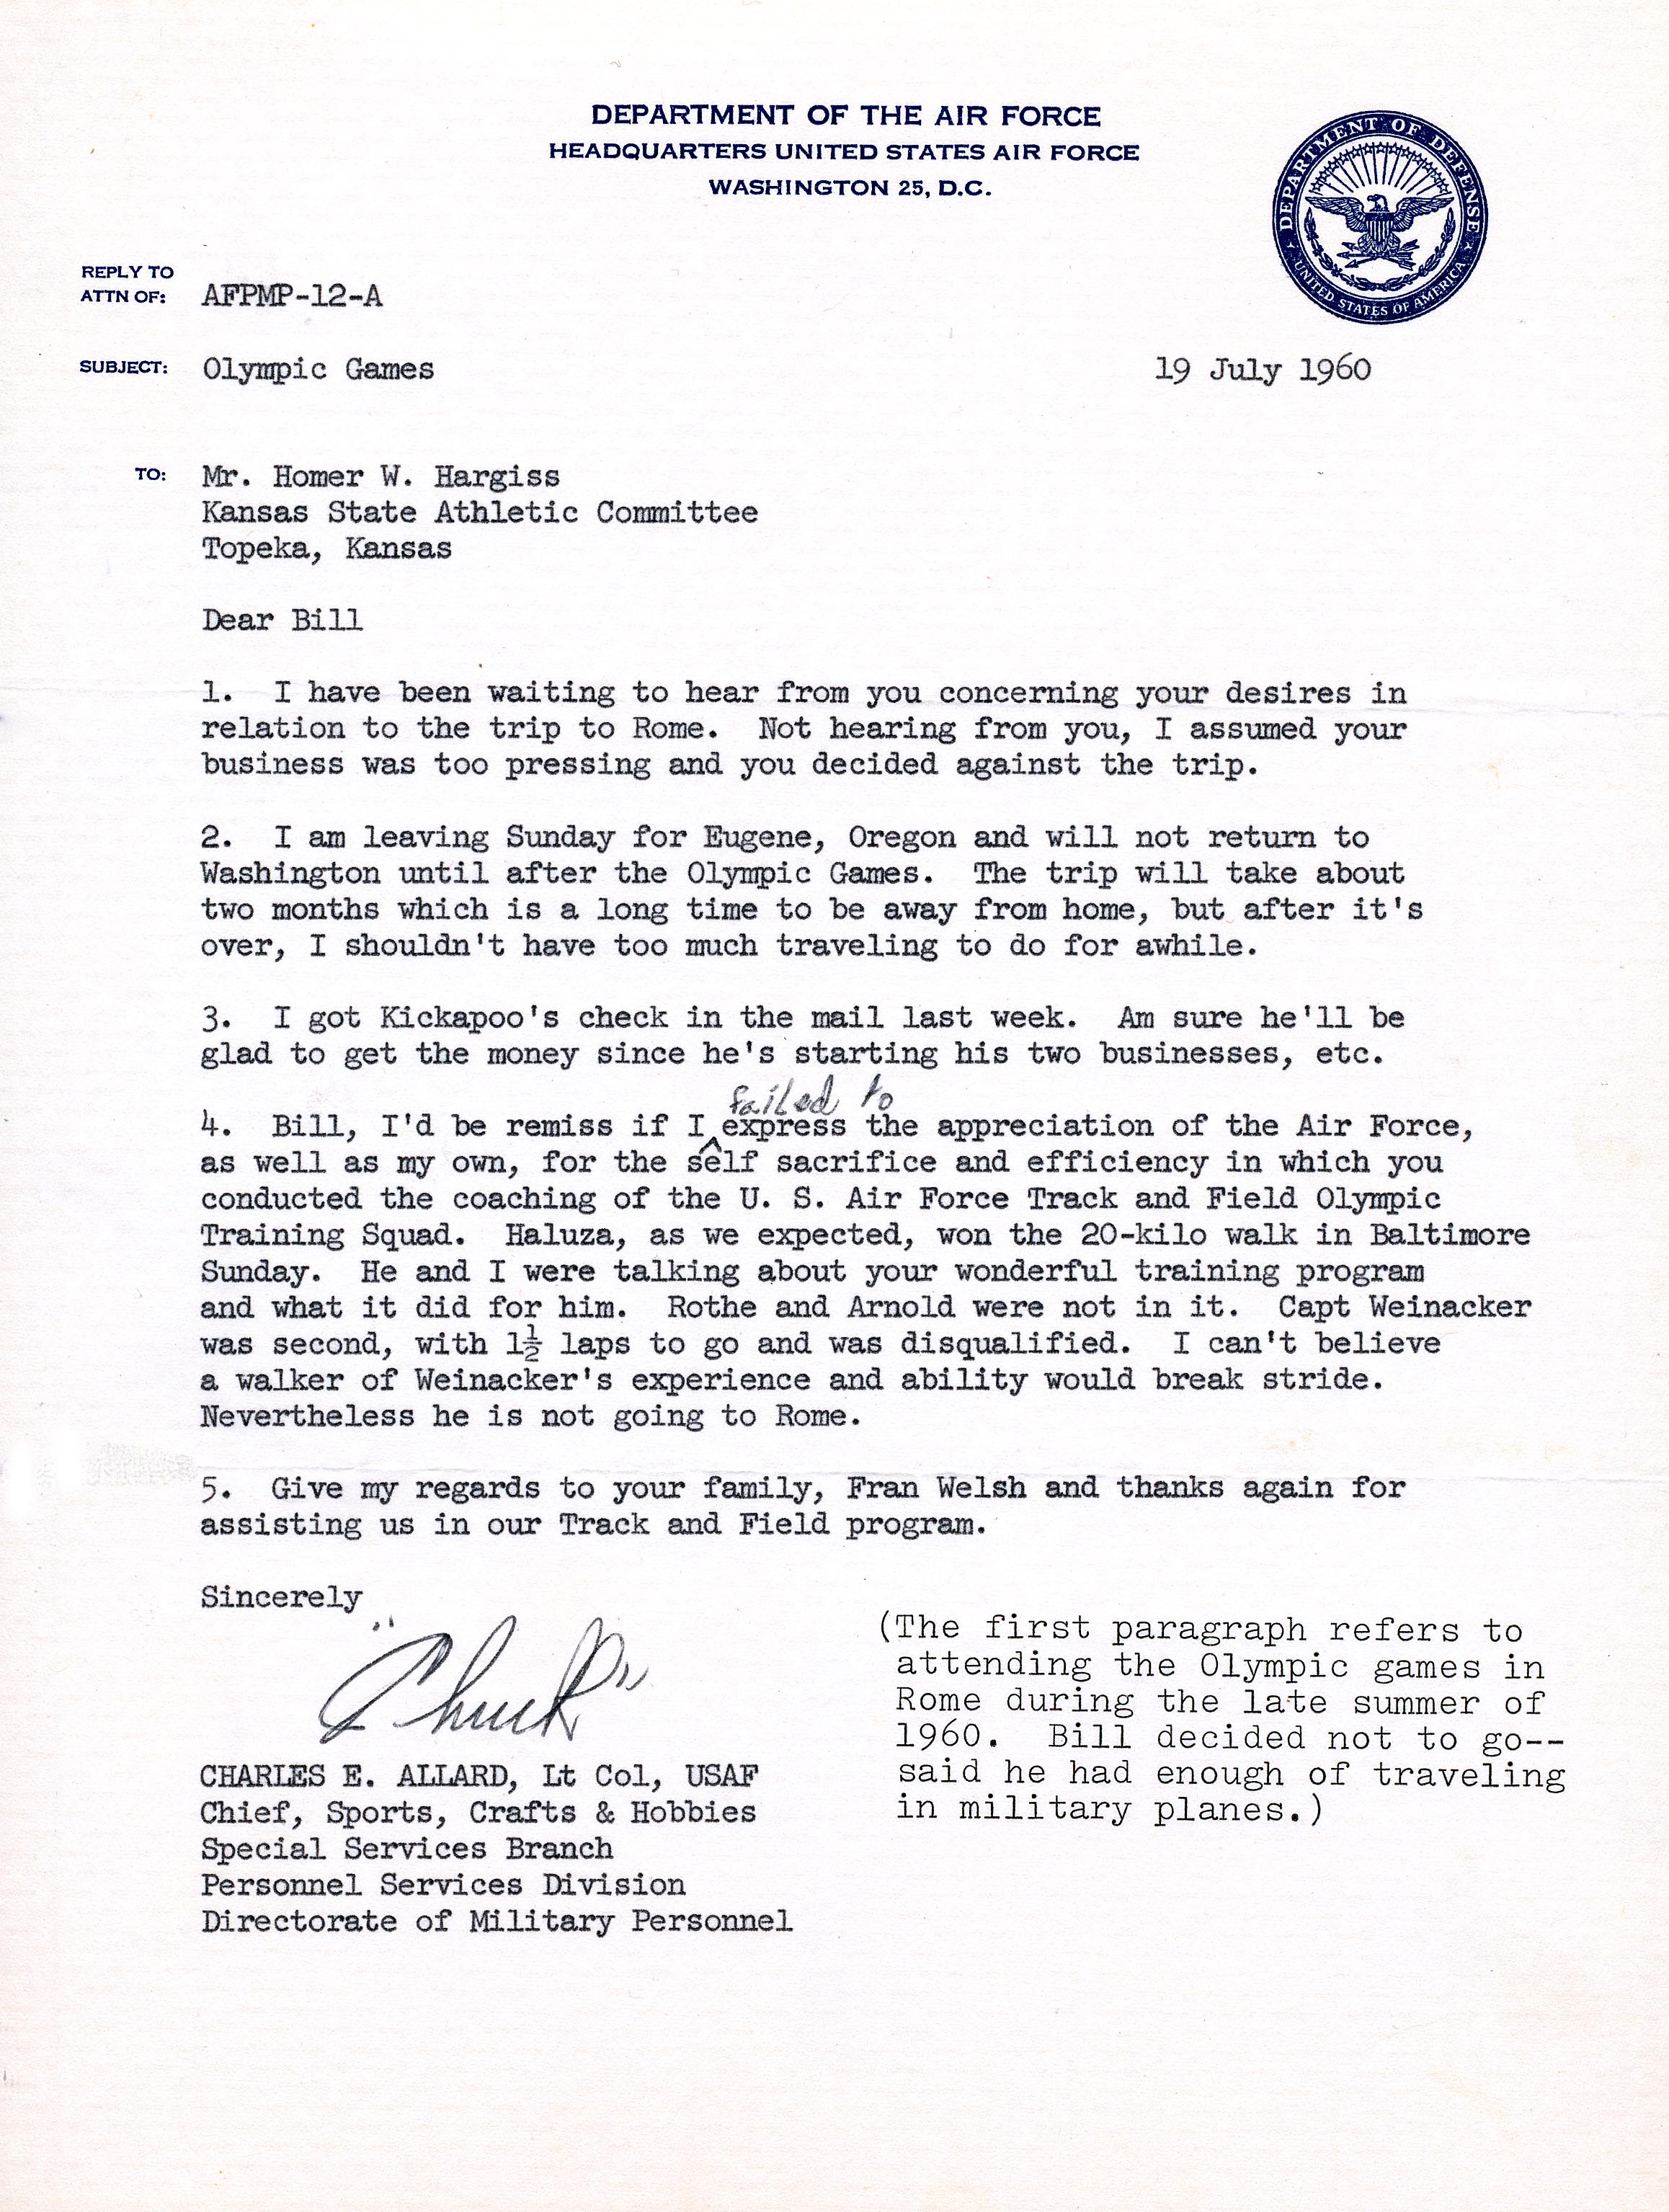 Letter of appreciation from USAF to Bill Hargiss, 1960